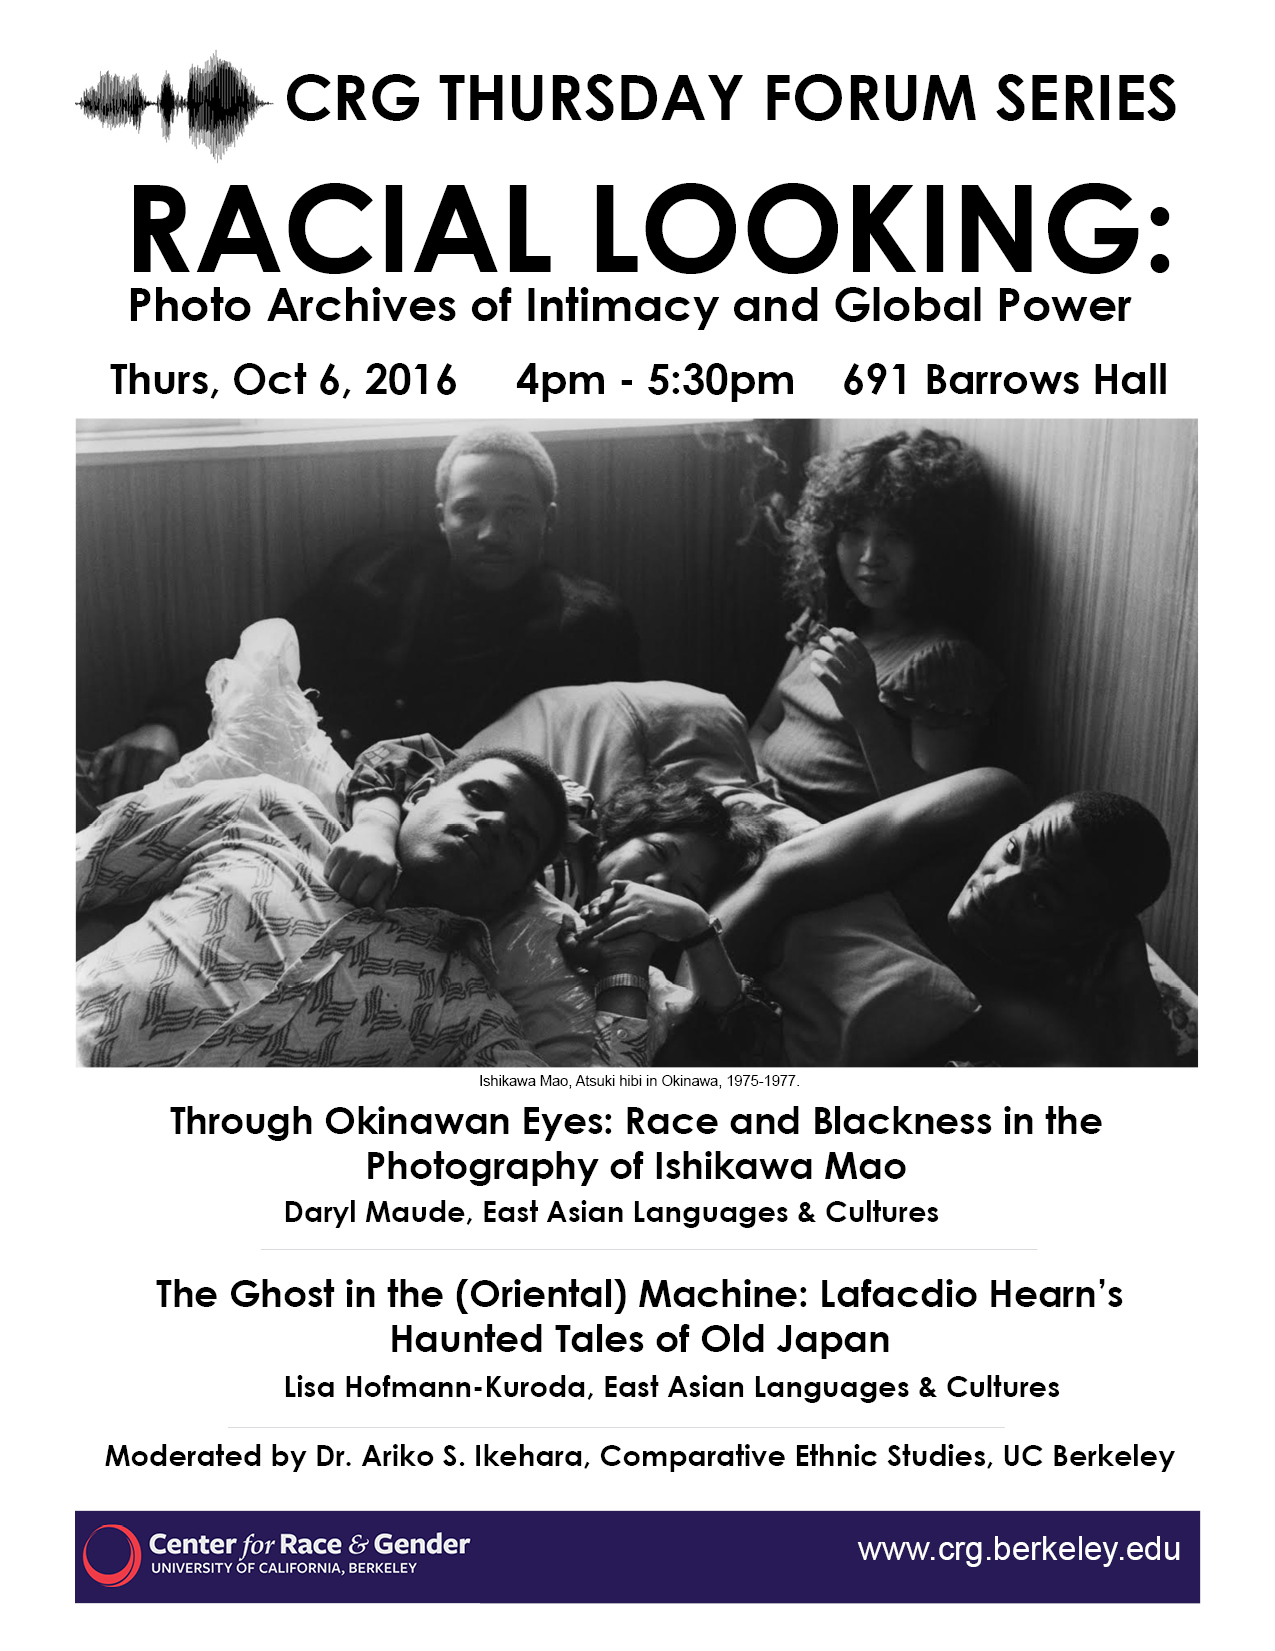 Racial Looking: Photo Archives of Intimacy, Orientalism, & Global Power